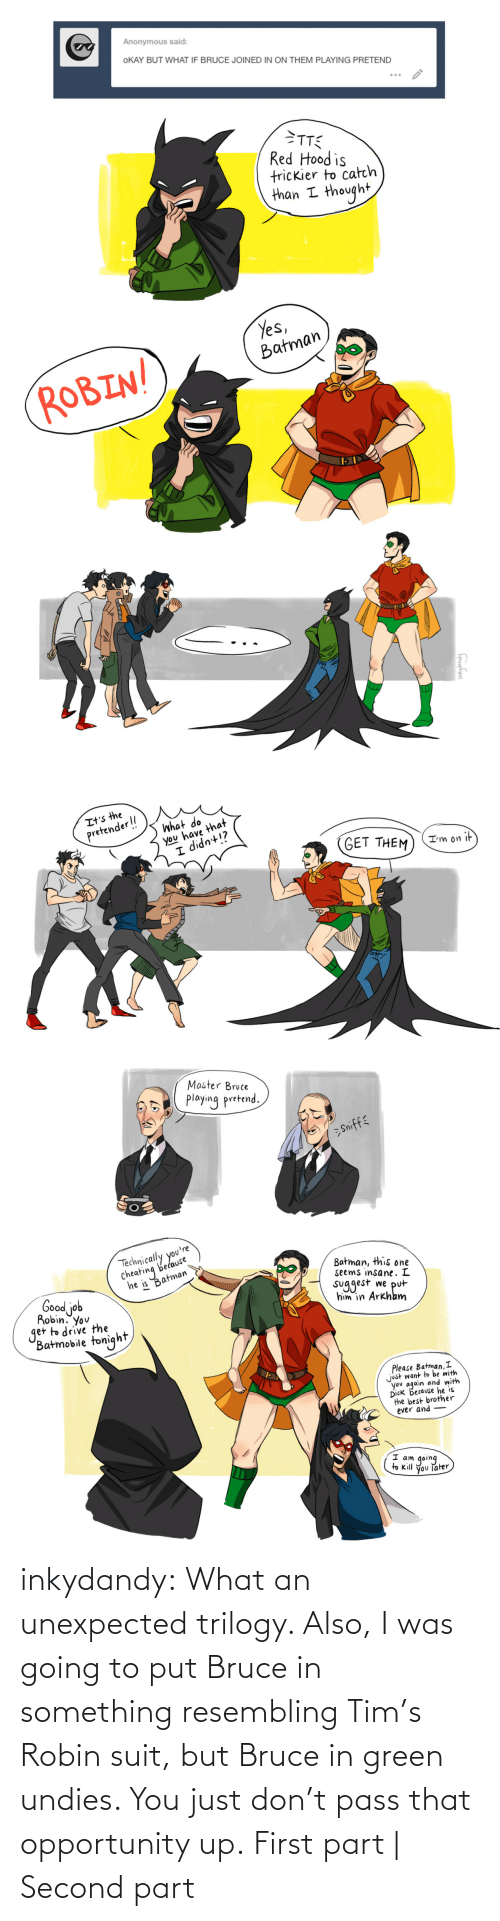 Http: inkydandy: What an unexpected trilogy. Also, I was going to put Bruce in something resembling Tim's Robin suit, but Bruce in green undies. You just don't pass that opportunity up. First part | Second part